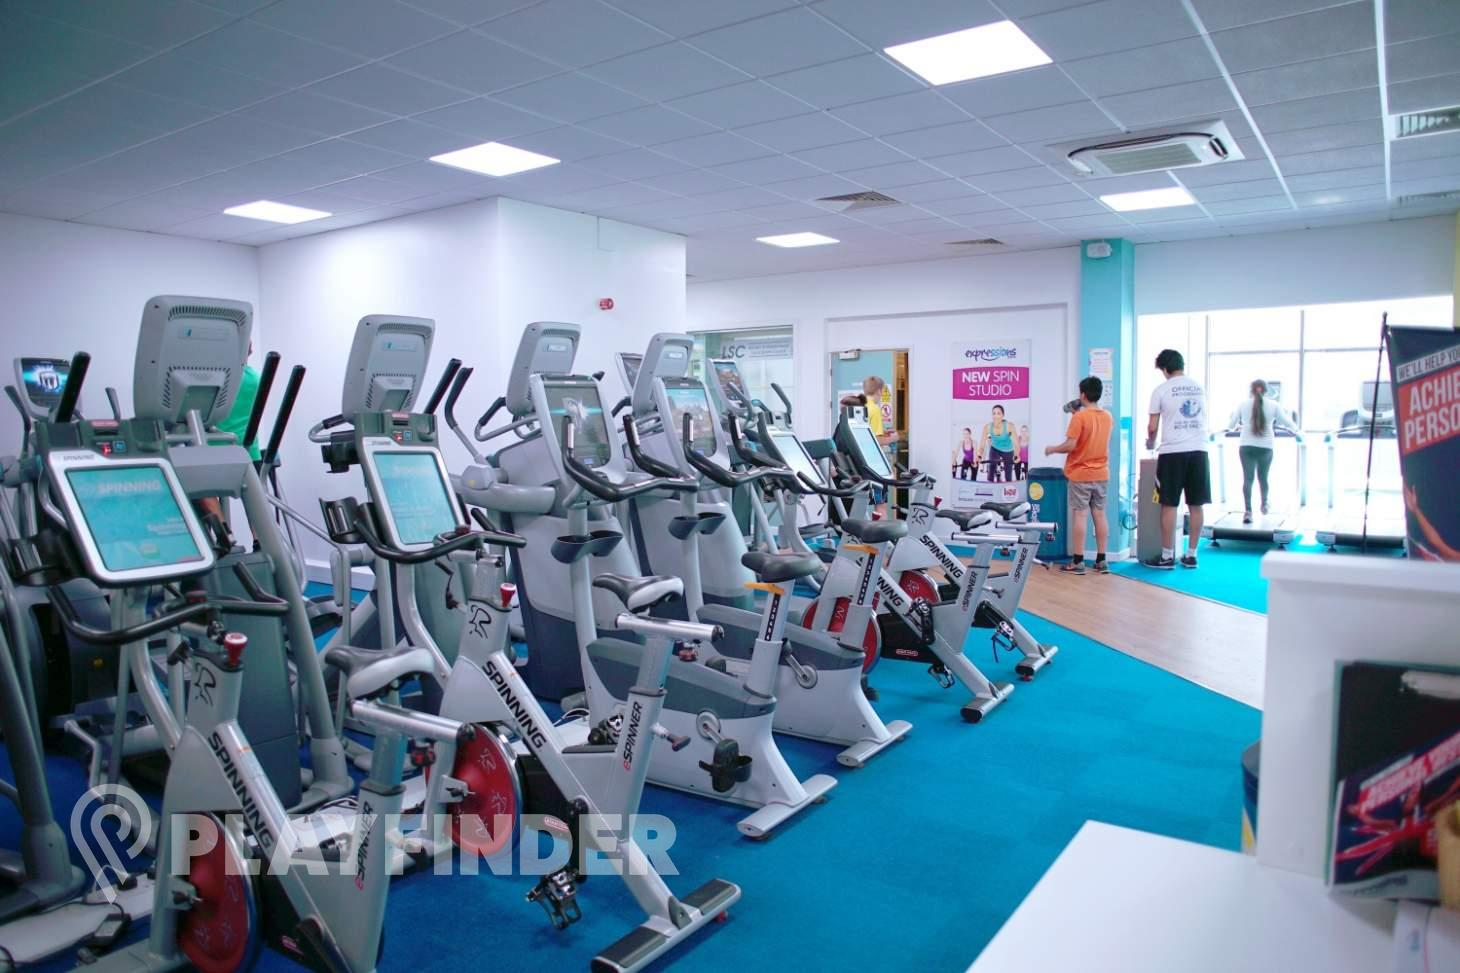 Magnet Leisure Centre Indoor gym